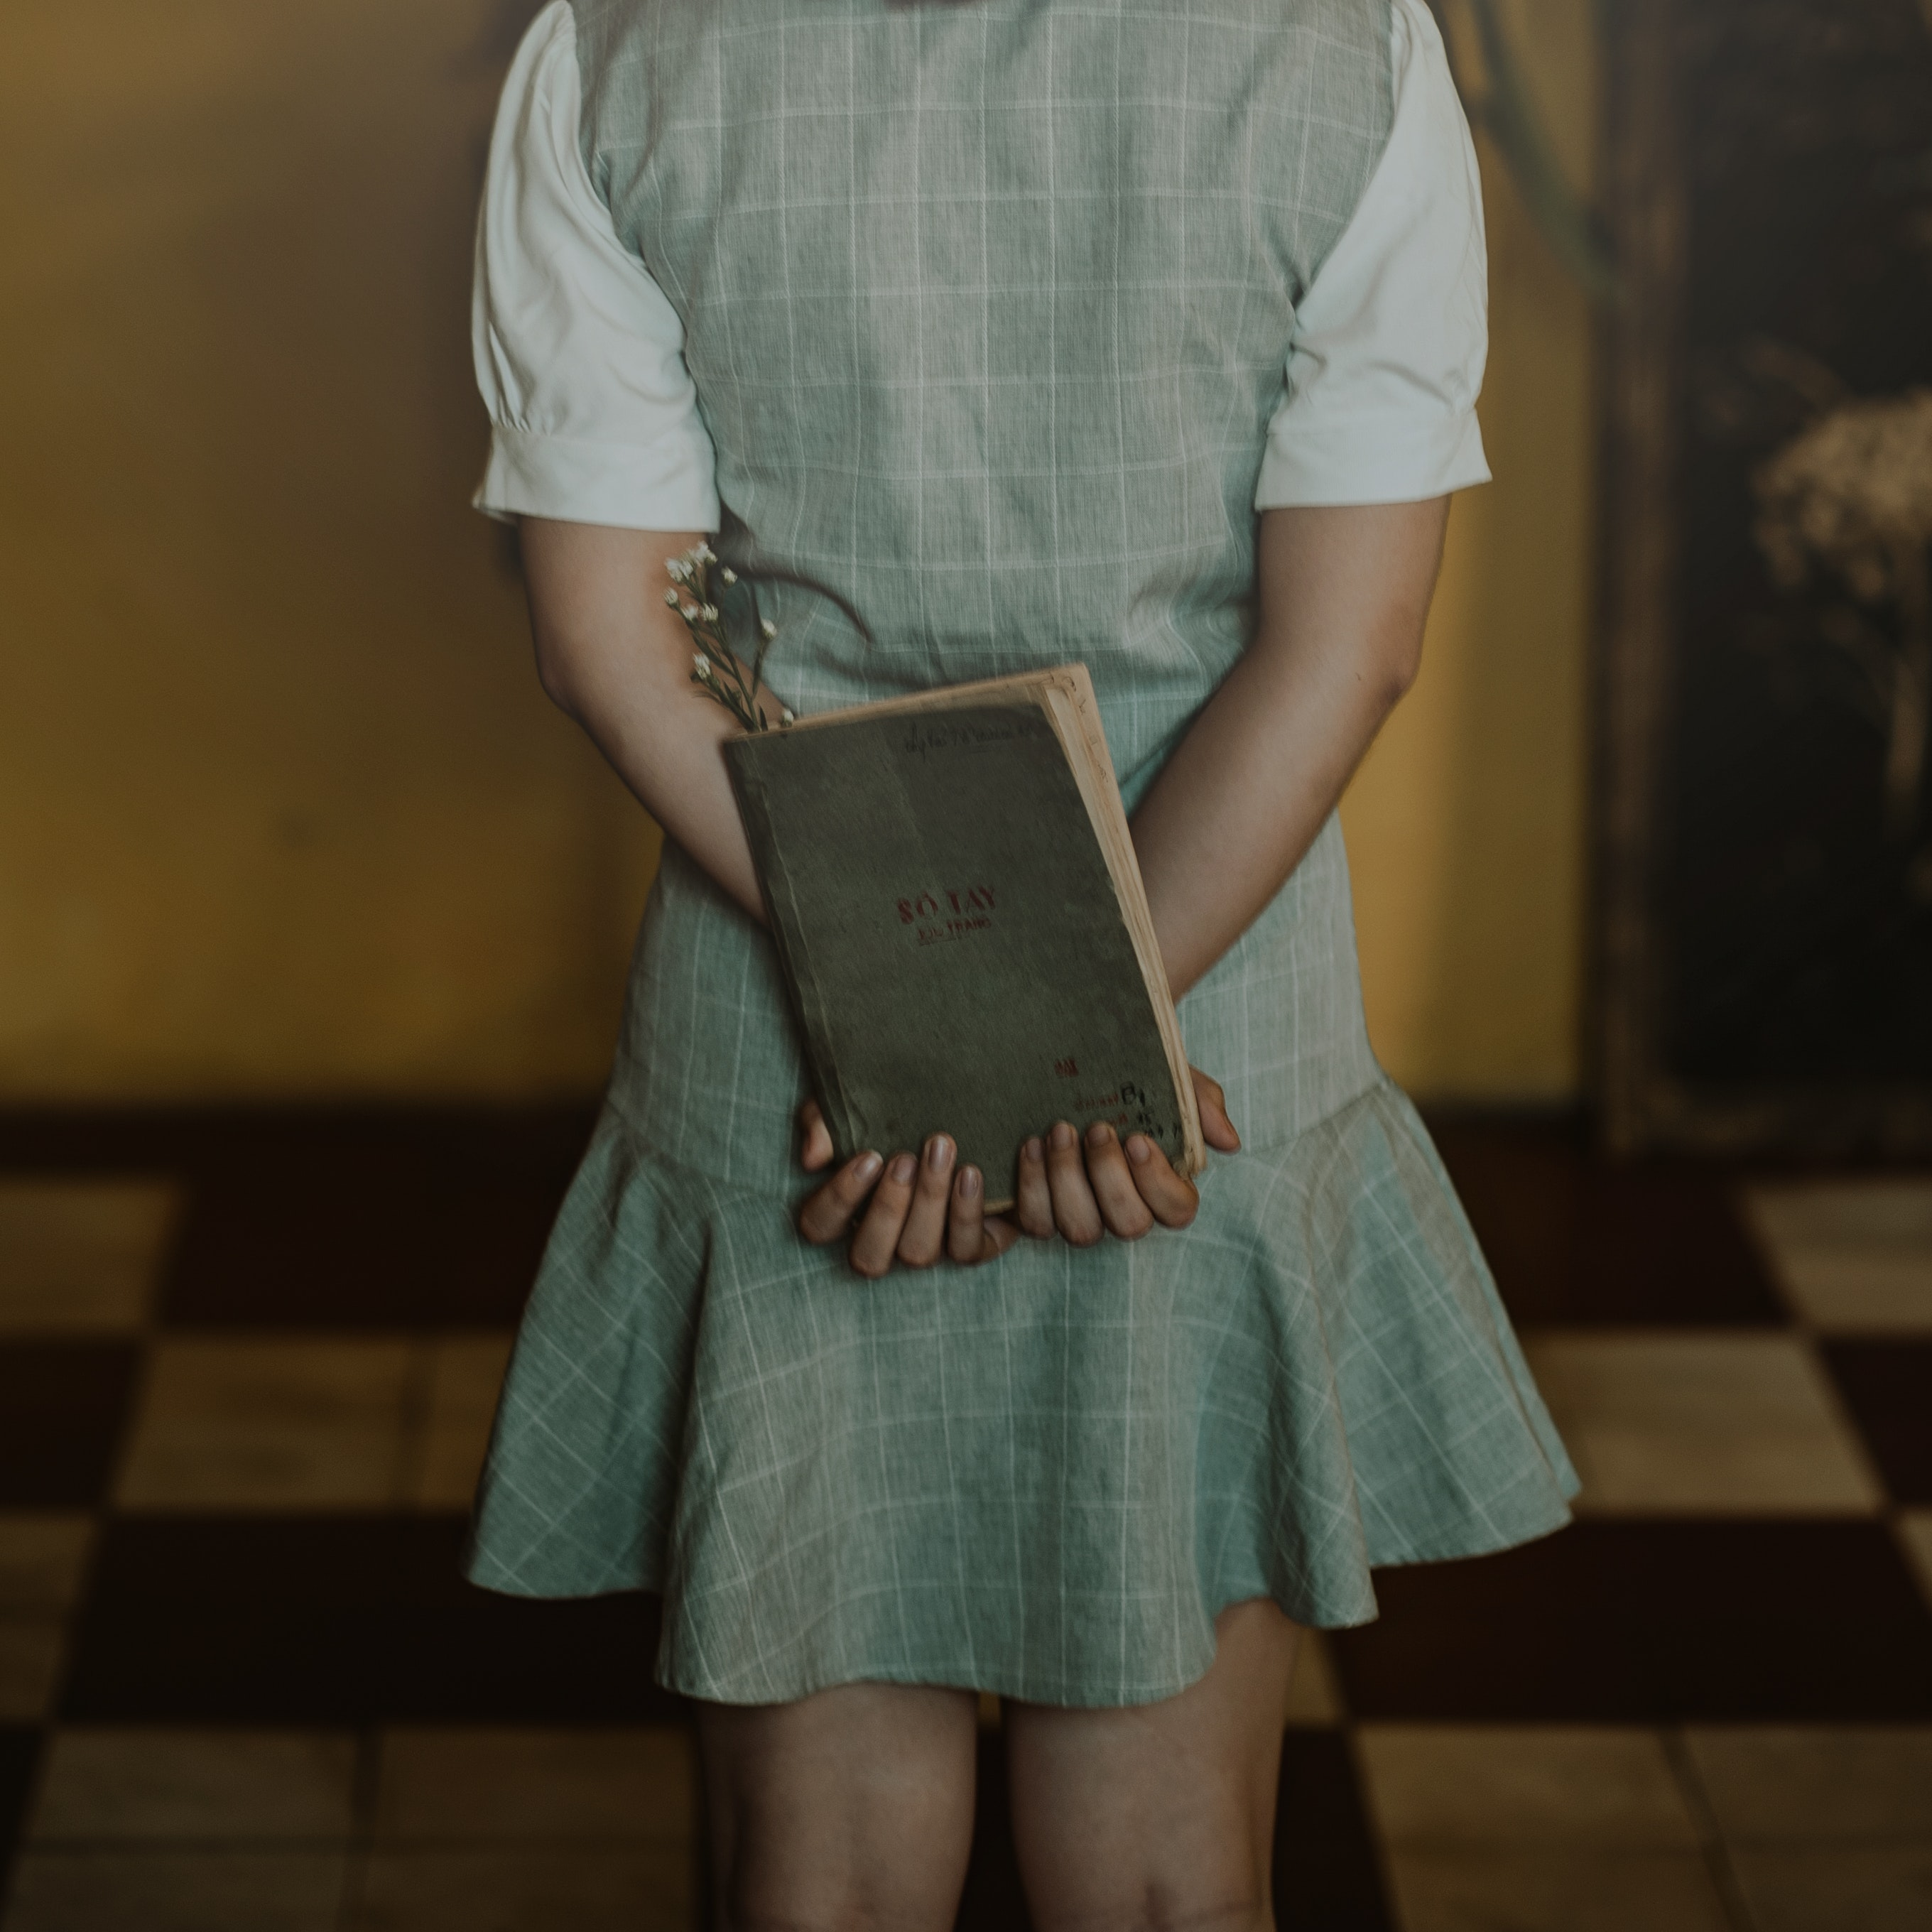 Woman Wearing Grey Dress Holding Book, Person, Young, Woman, Wear, HQ Photo